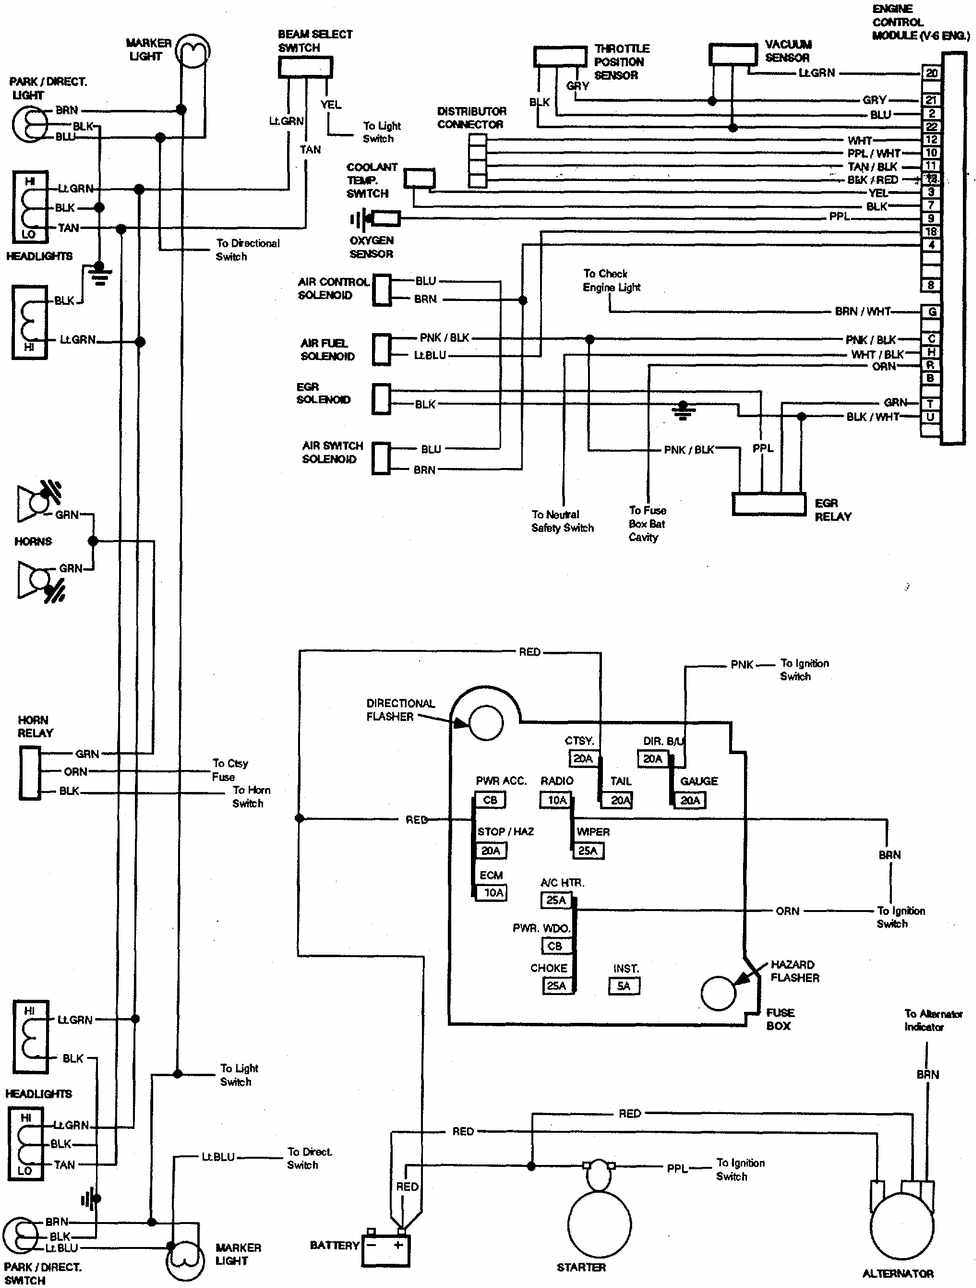 Chevy Wiring Diagrams Trucks : 28 Wiring Diagram Images